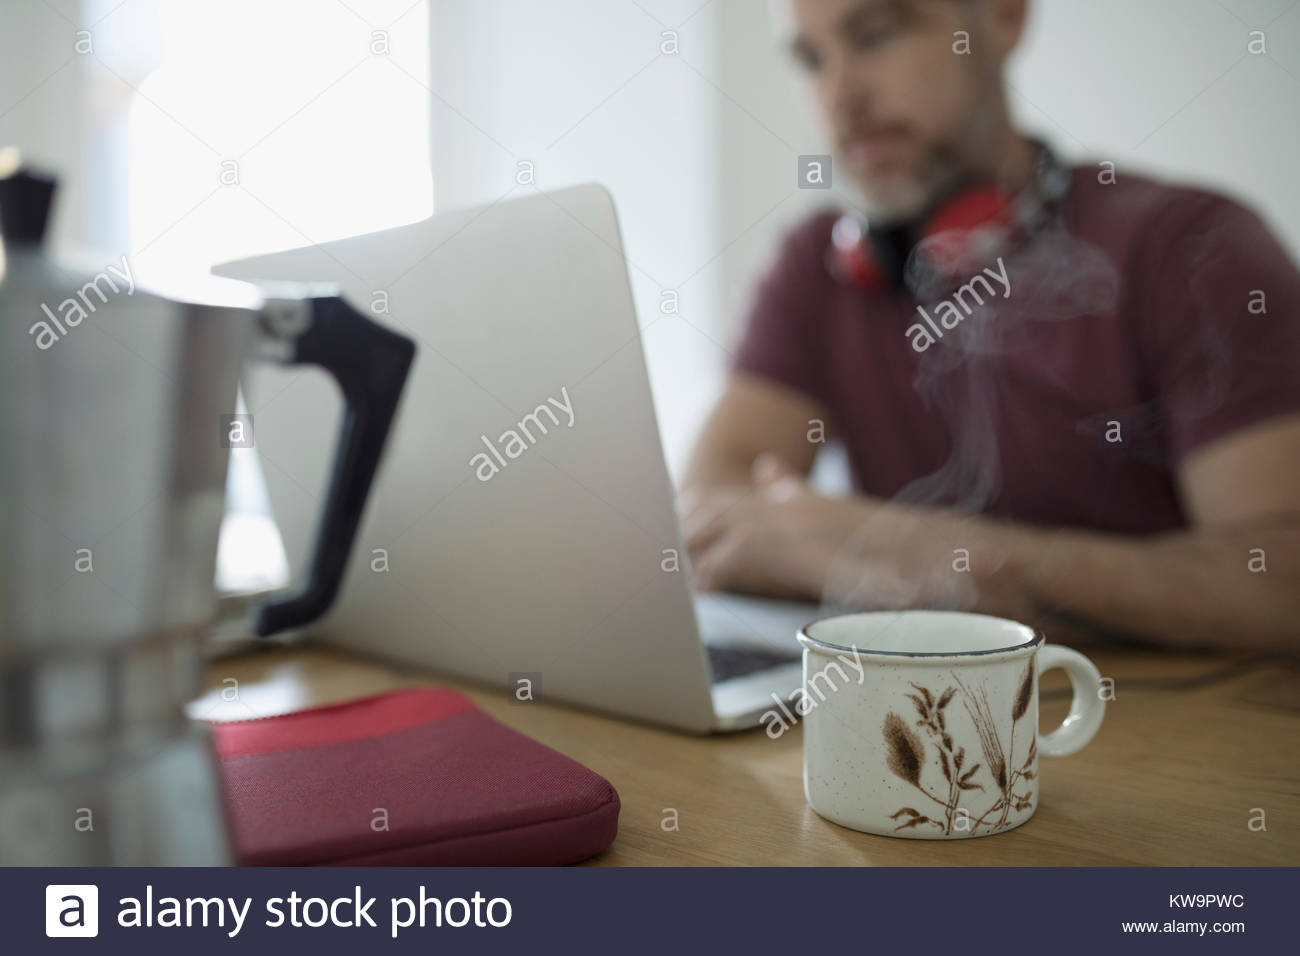 Steaming cup of coffee and man telecommuting,working at laptop - Stock Image